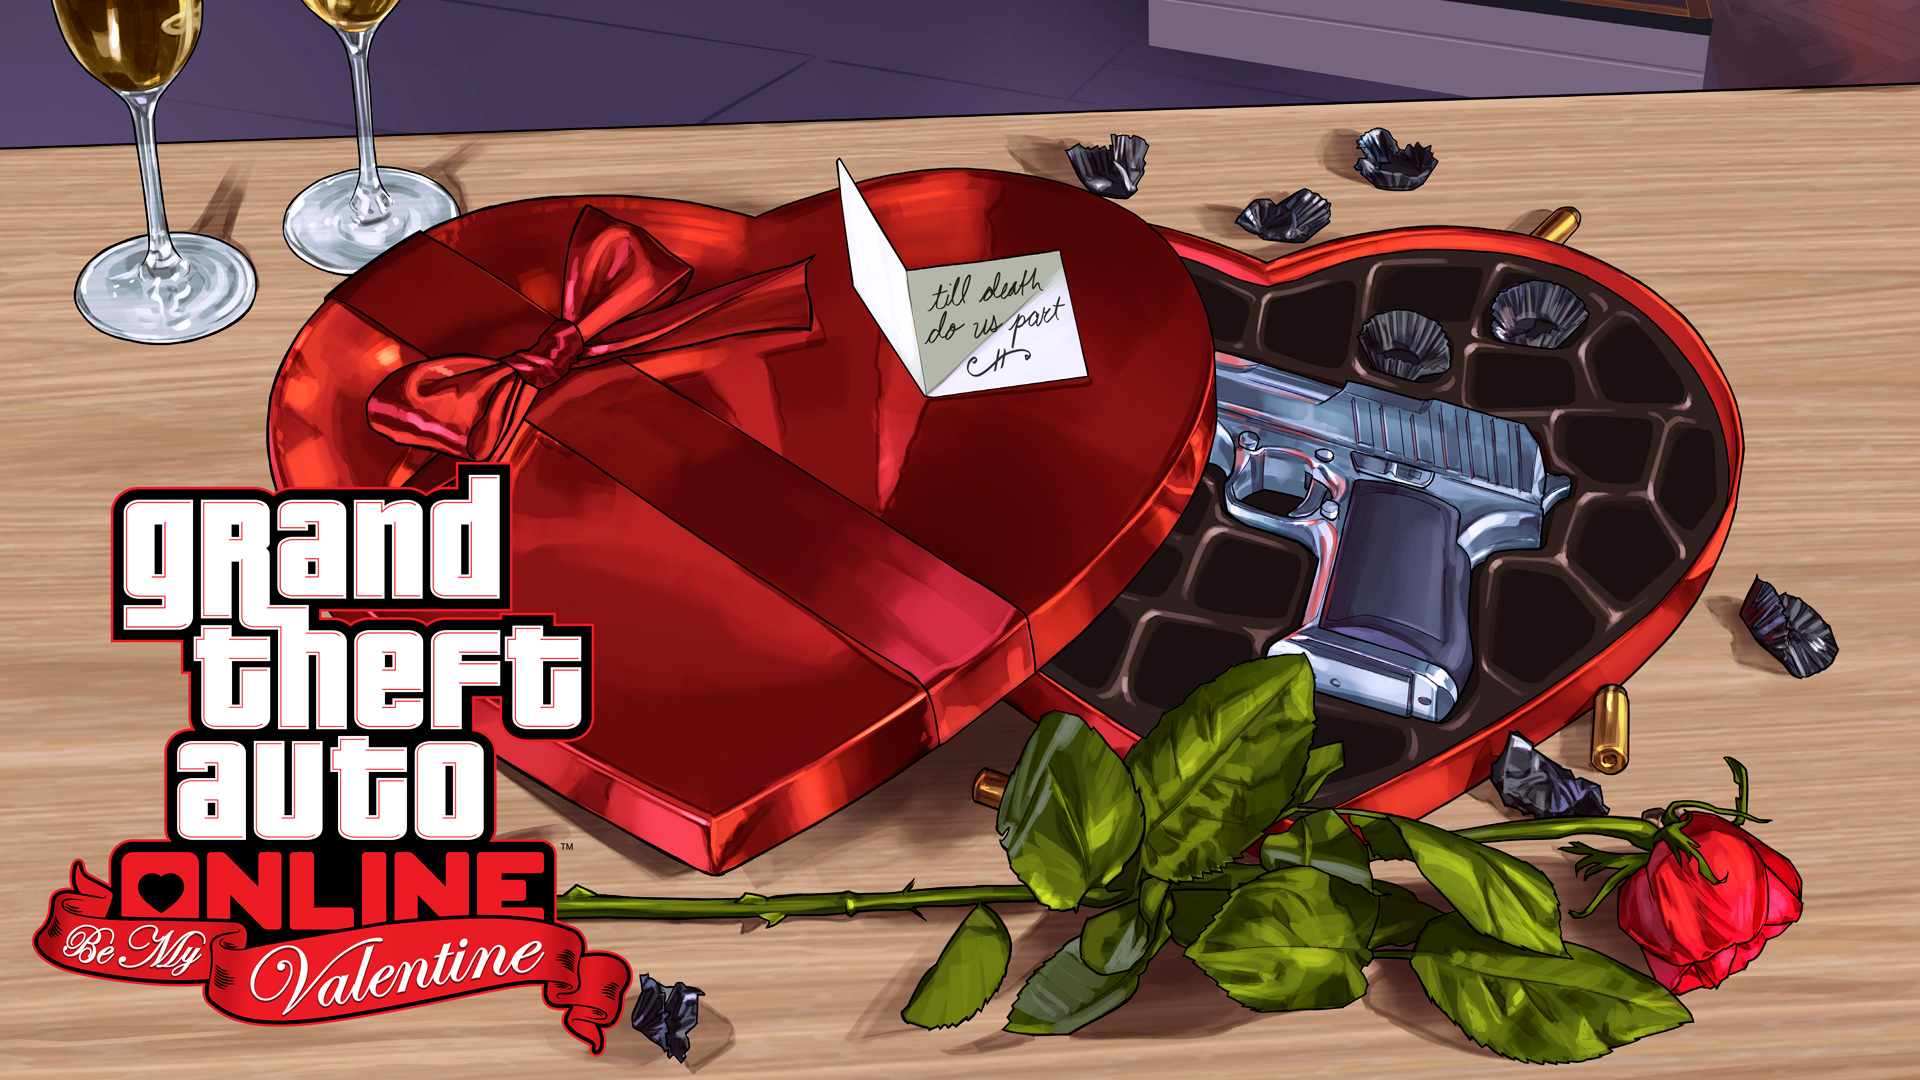 gta-on-line:-valentine's-day-function-week,-triple-and-double-benefits,-new-unlocks,-bargains-&-far-more